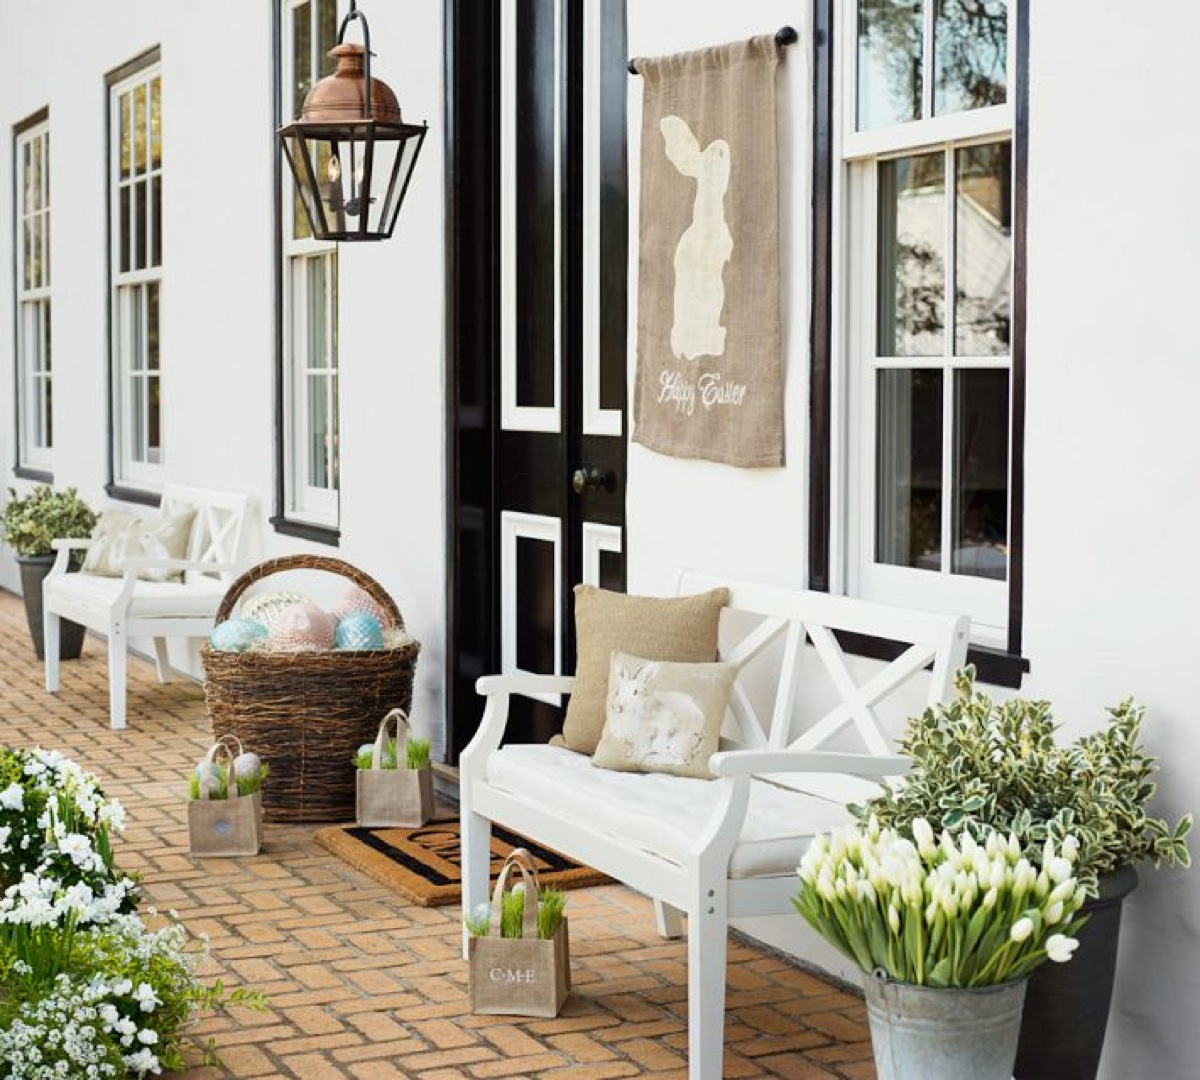 Pottery Barn Porch Ideas For Spring: Just A Girl Blog